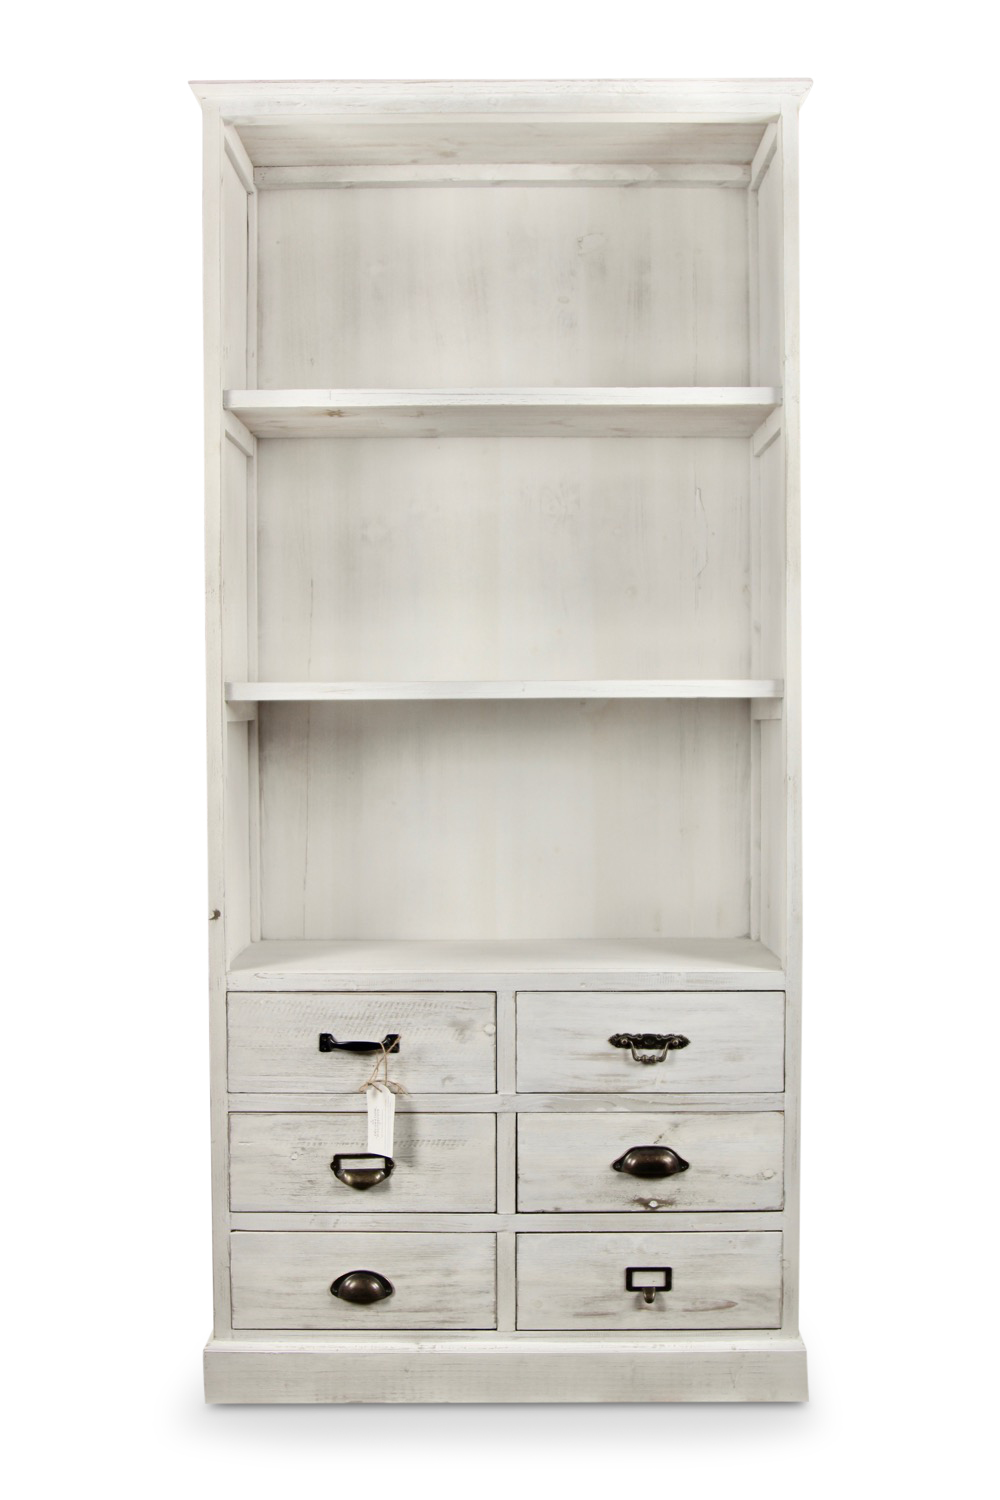 buffet vaisselier rangement bois 6 tiroirs ceruse blanc. Black Bedroom Furniture Sets. Home Design Ideas